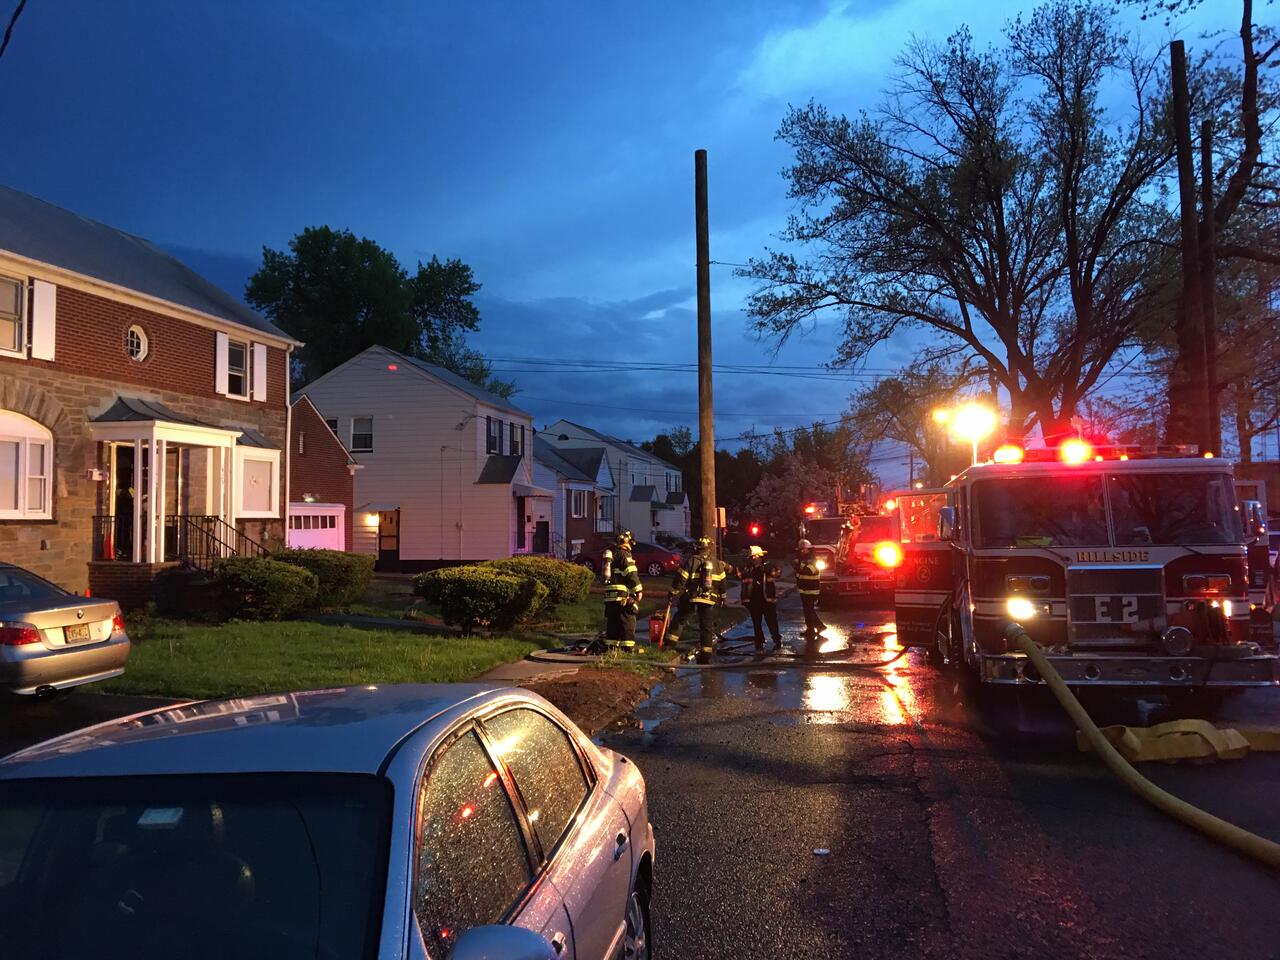 Firefighters Battle Two Alarm Fire After Lightning Strikes